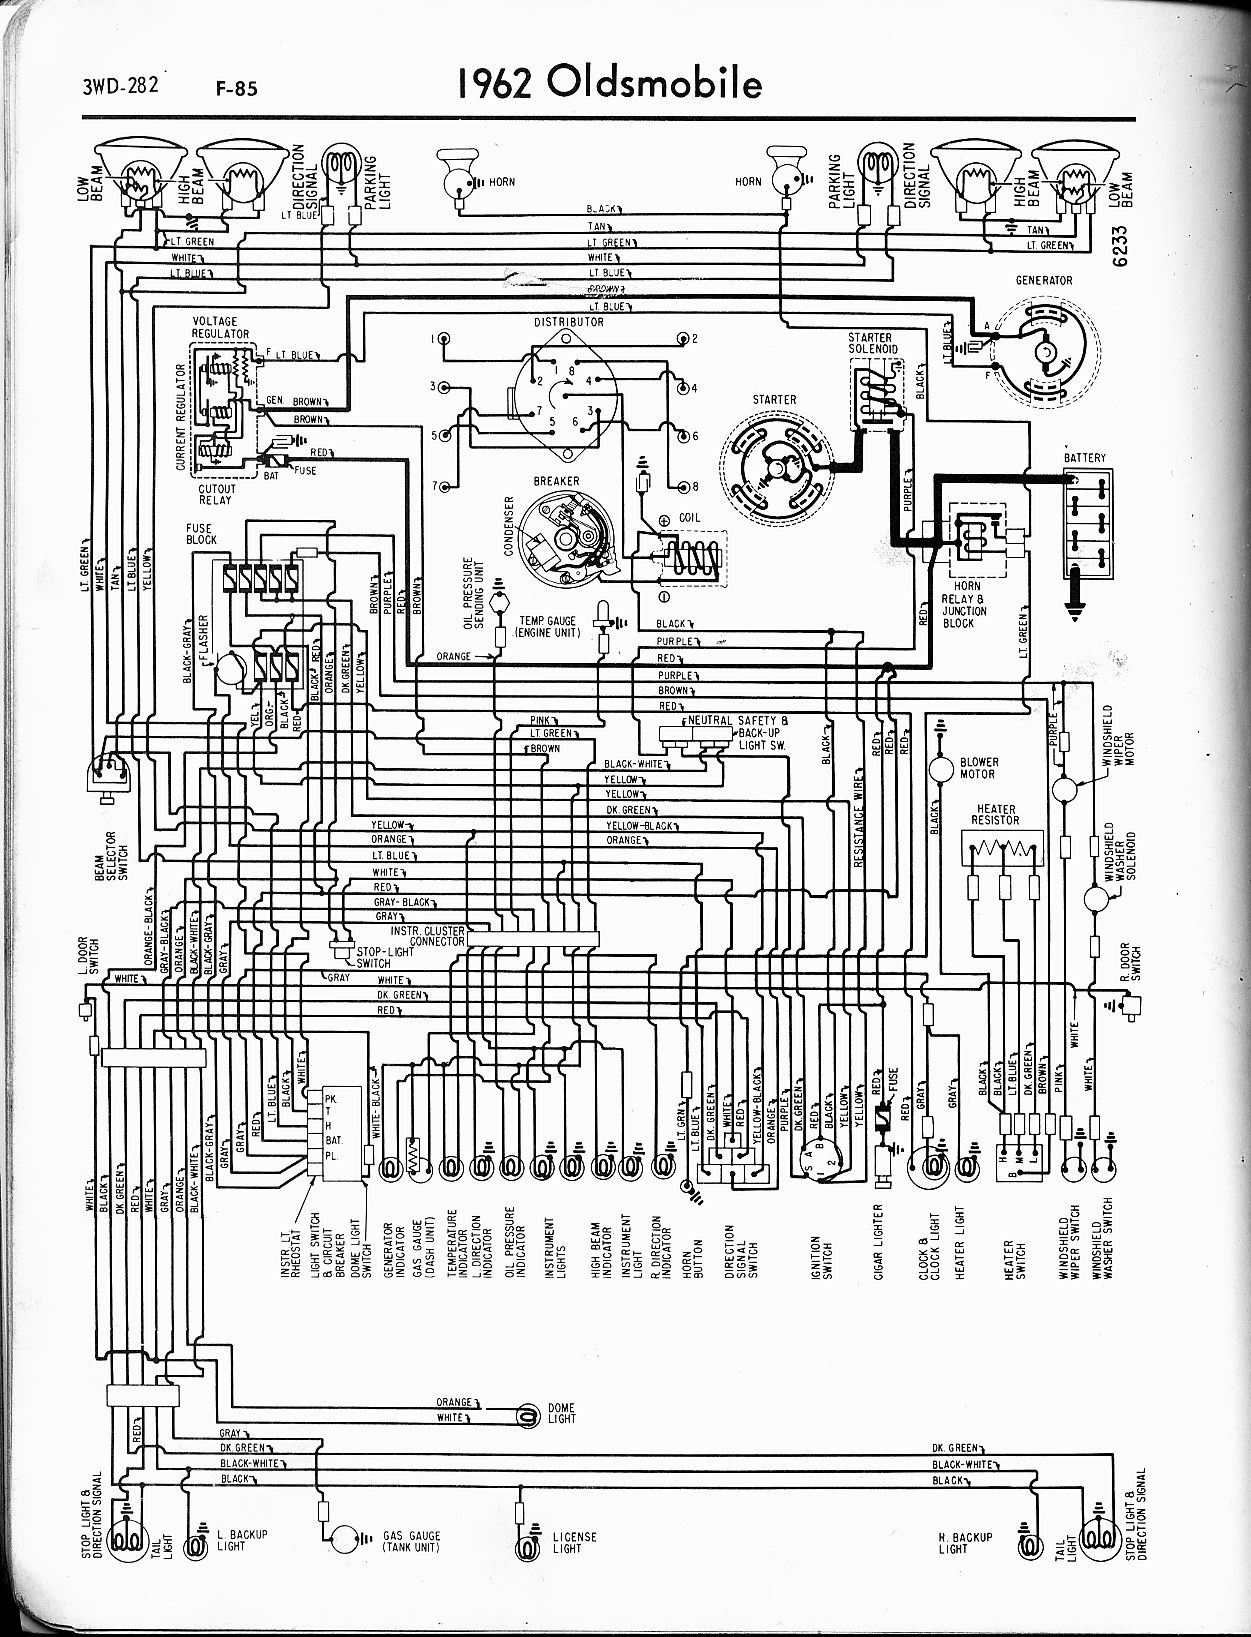 Oldsmobile 88 Wiring Diagram Smart Diagrams The Old Car Manual Project Rh Oldcarmanualproject Com 1992 Radio